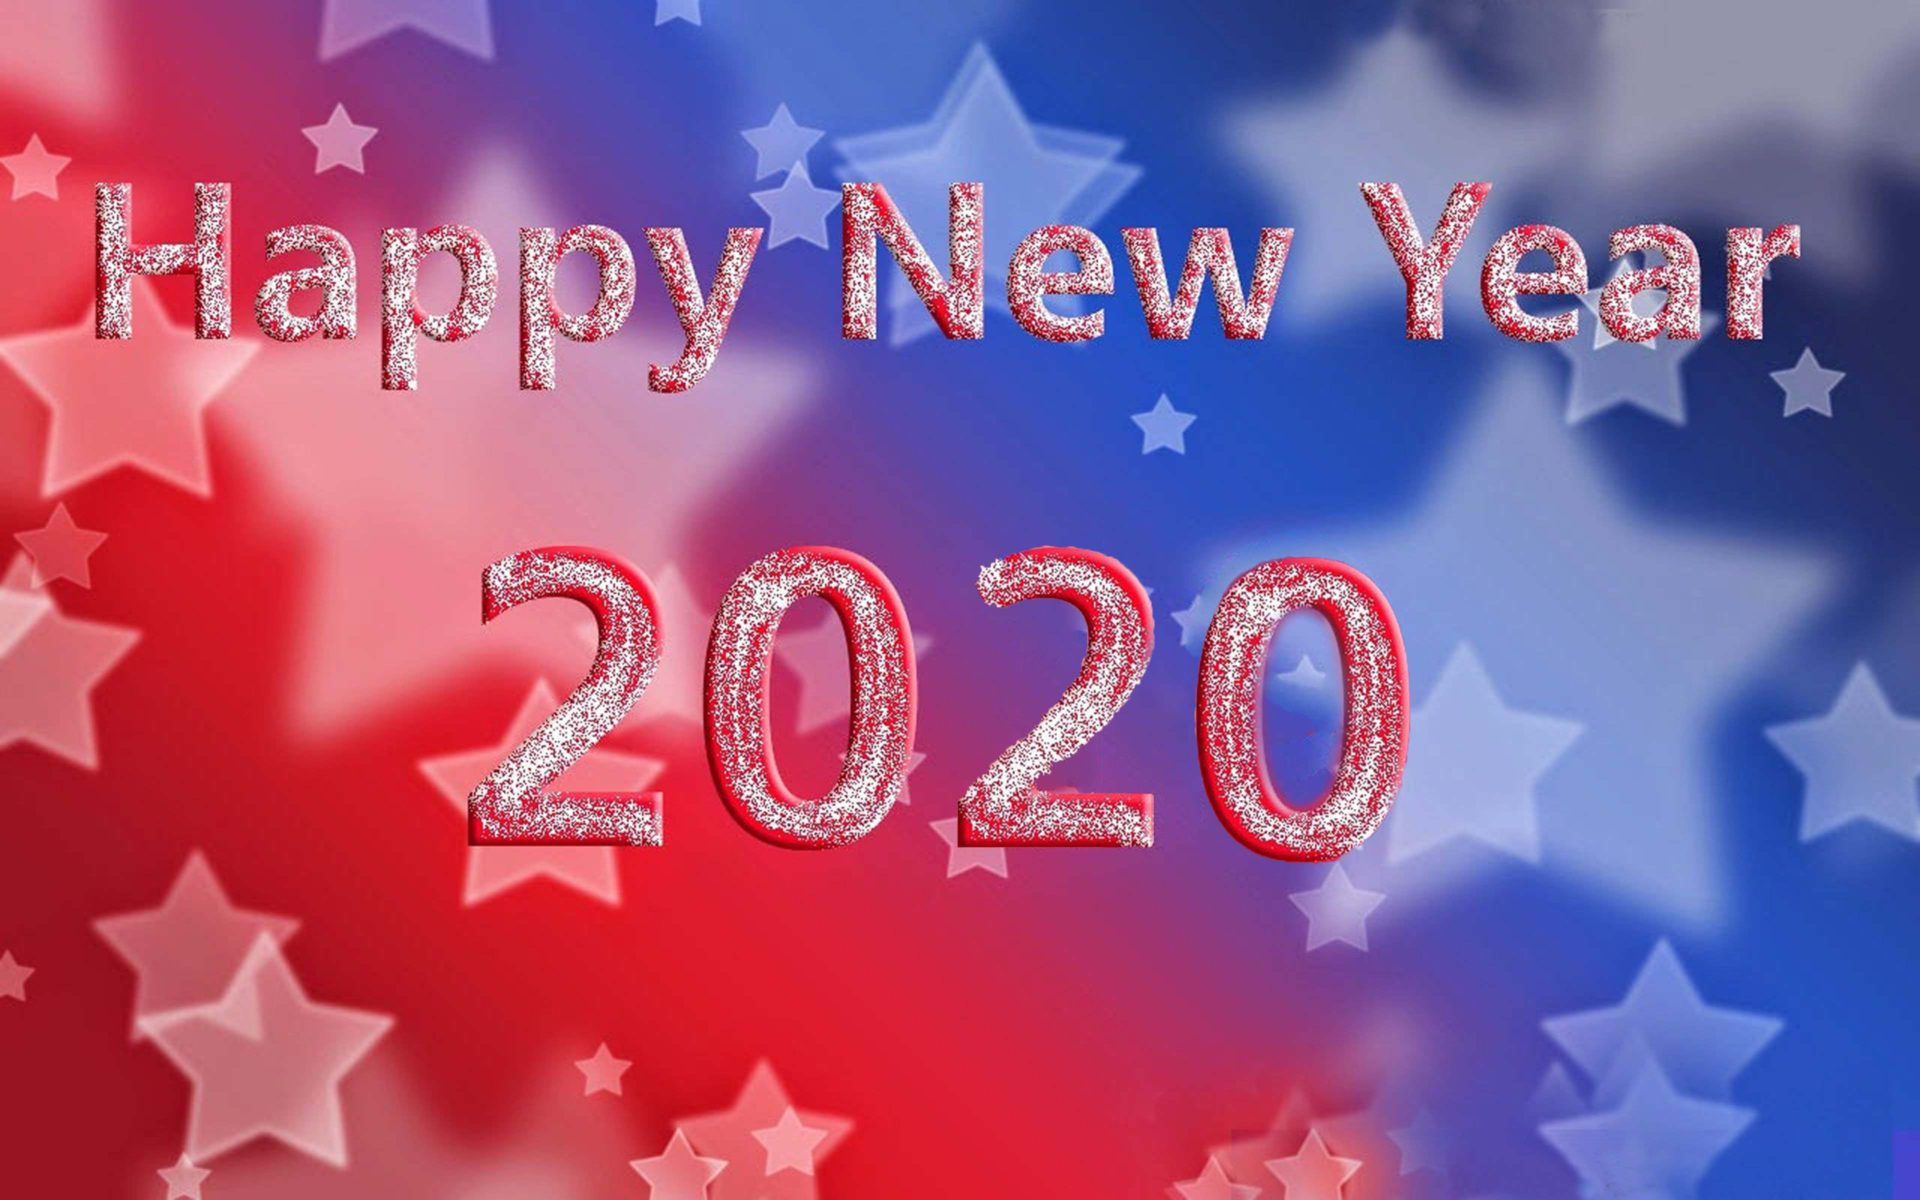 Happy New Year 2020 Greeting Card For Android Mobile Phones Hd 1920x1200